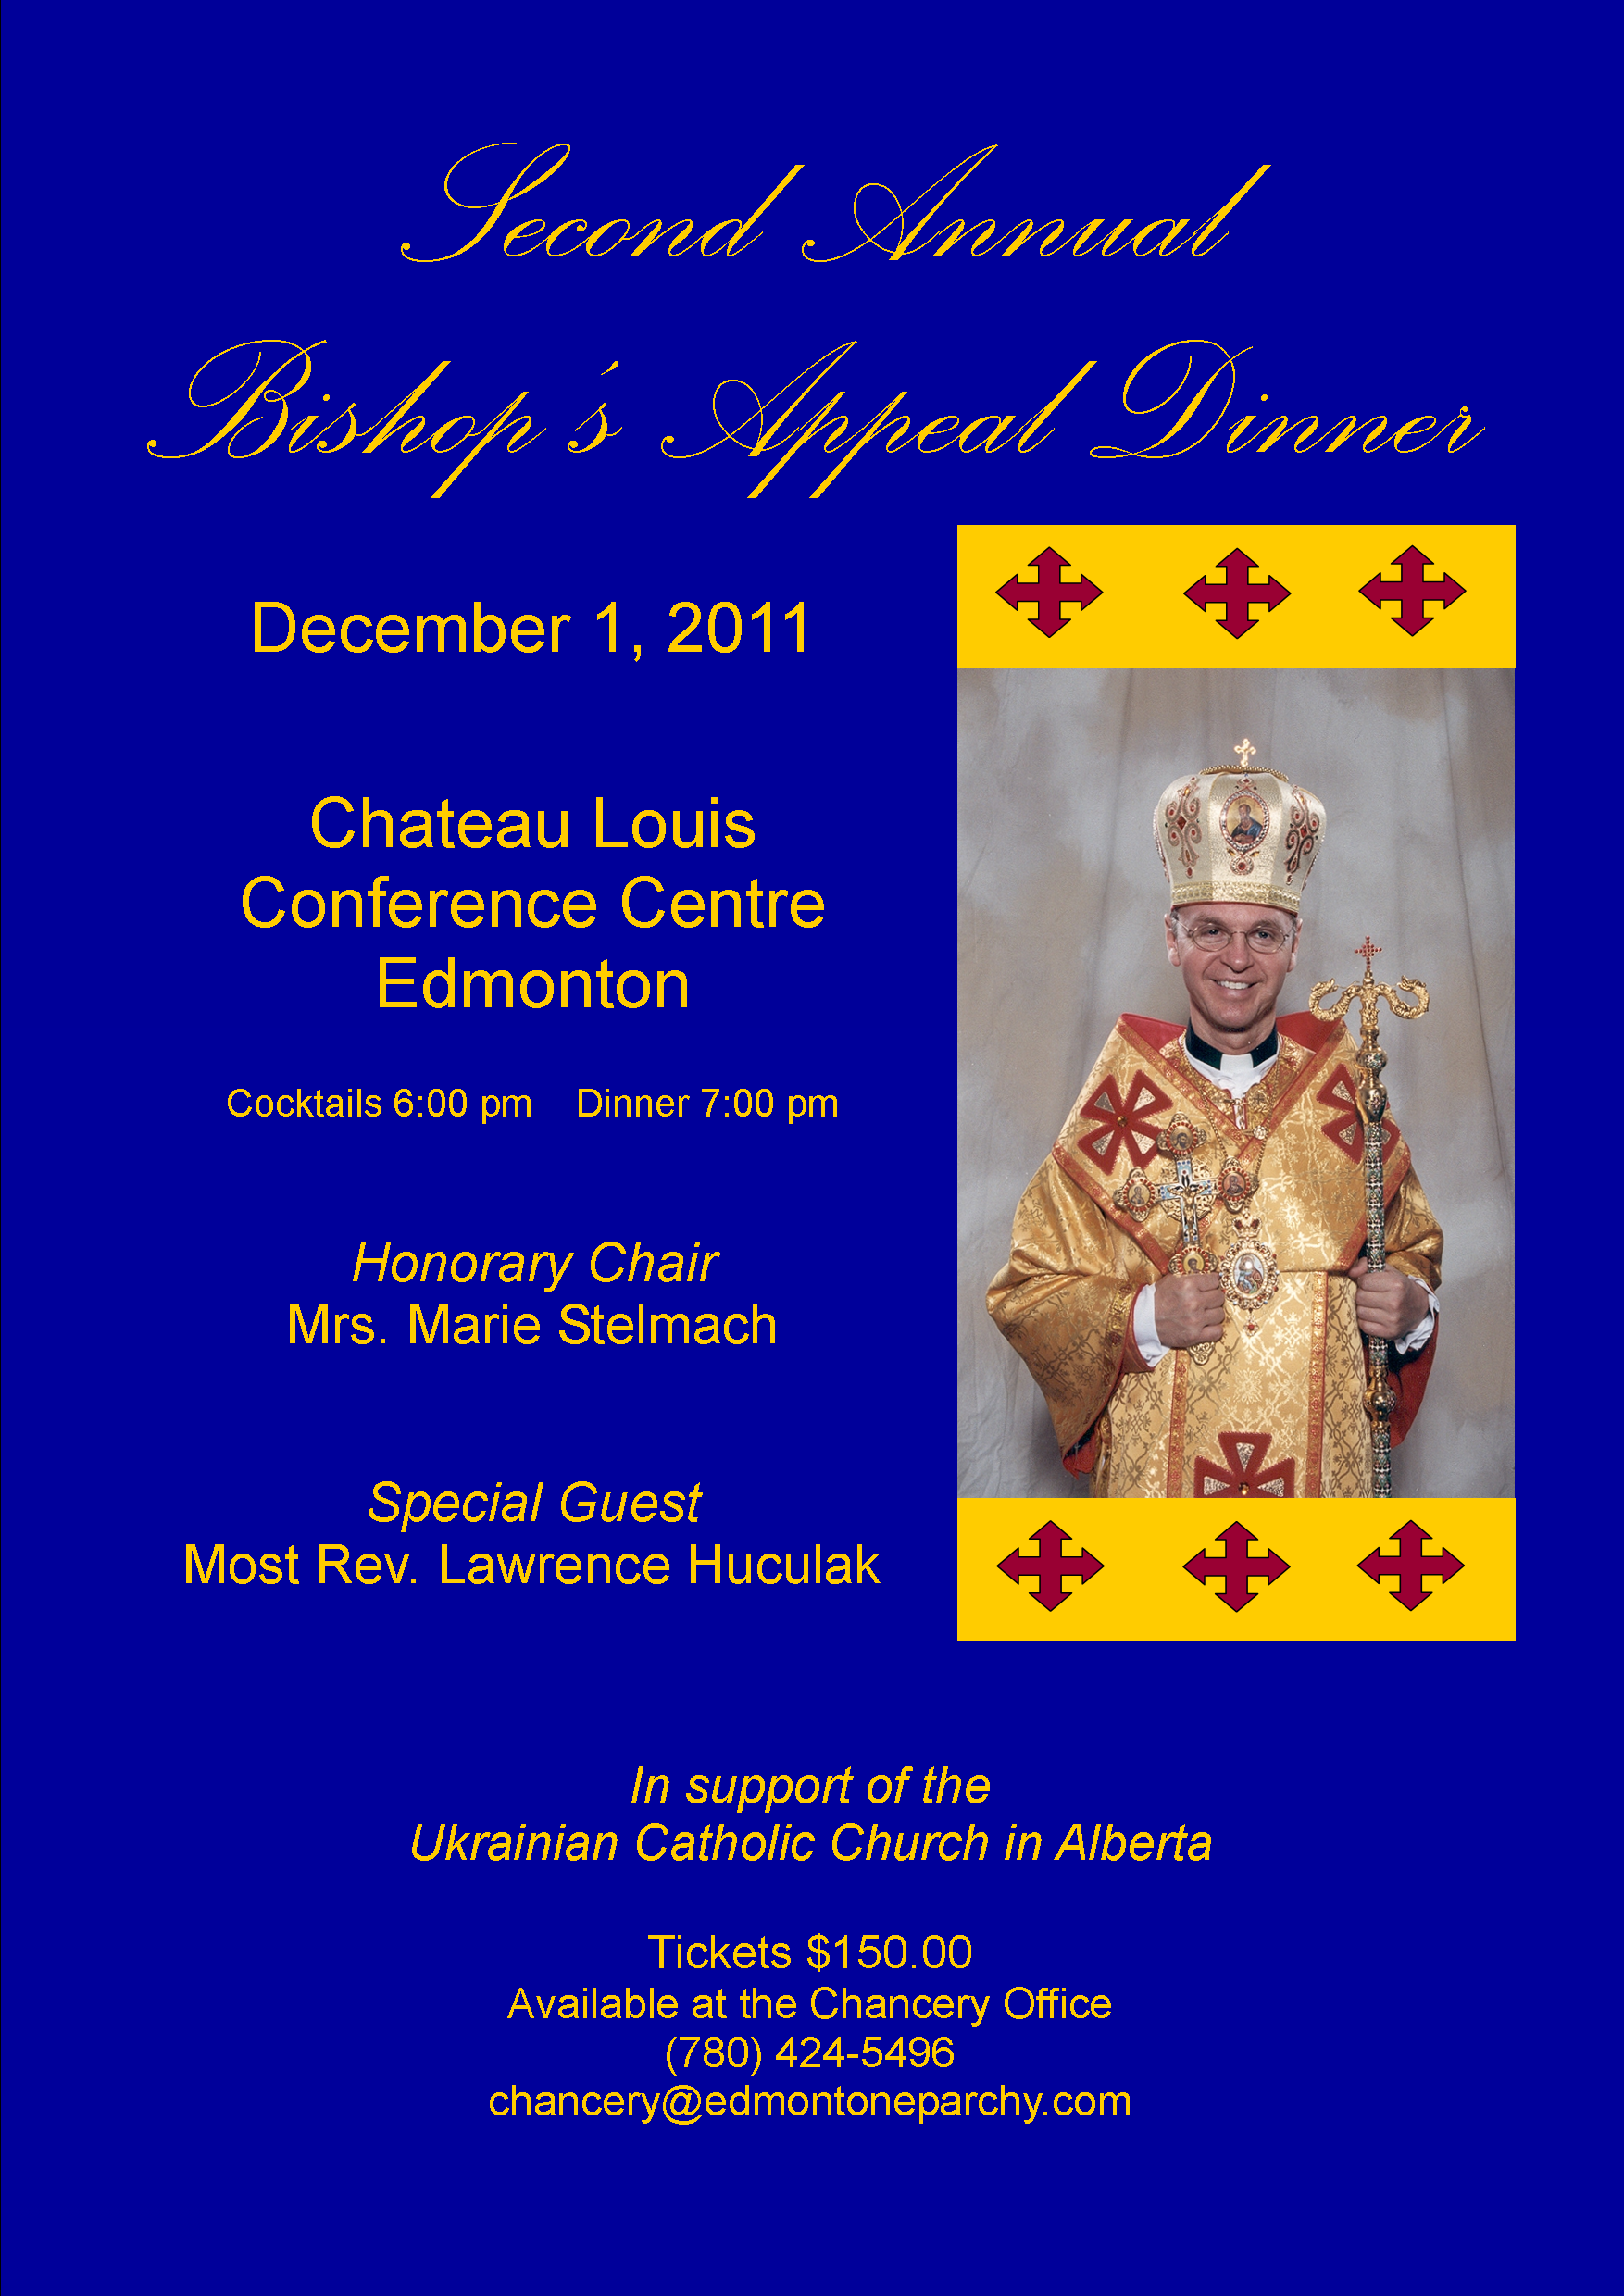 Second Annual Bishop's Appeal Dinner